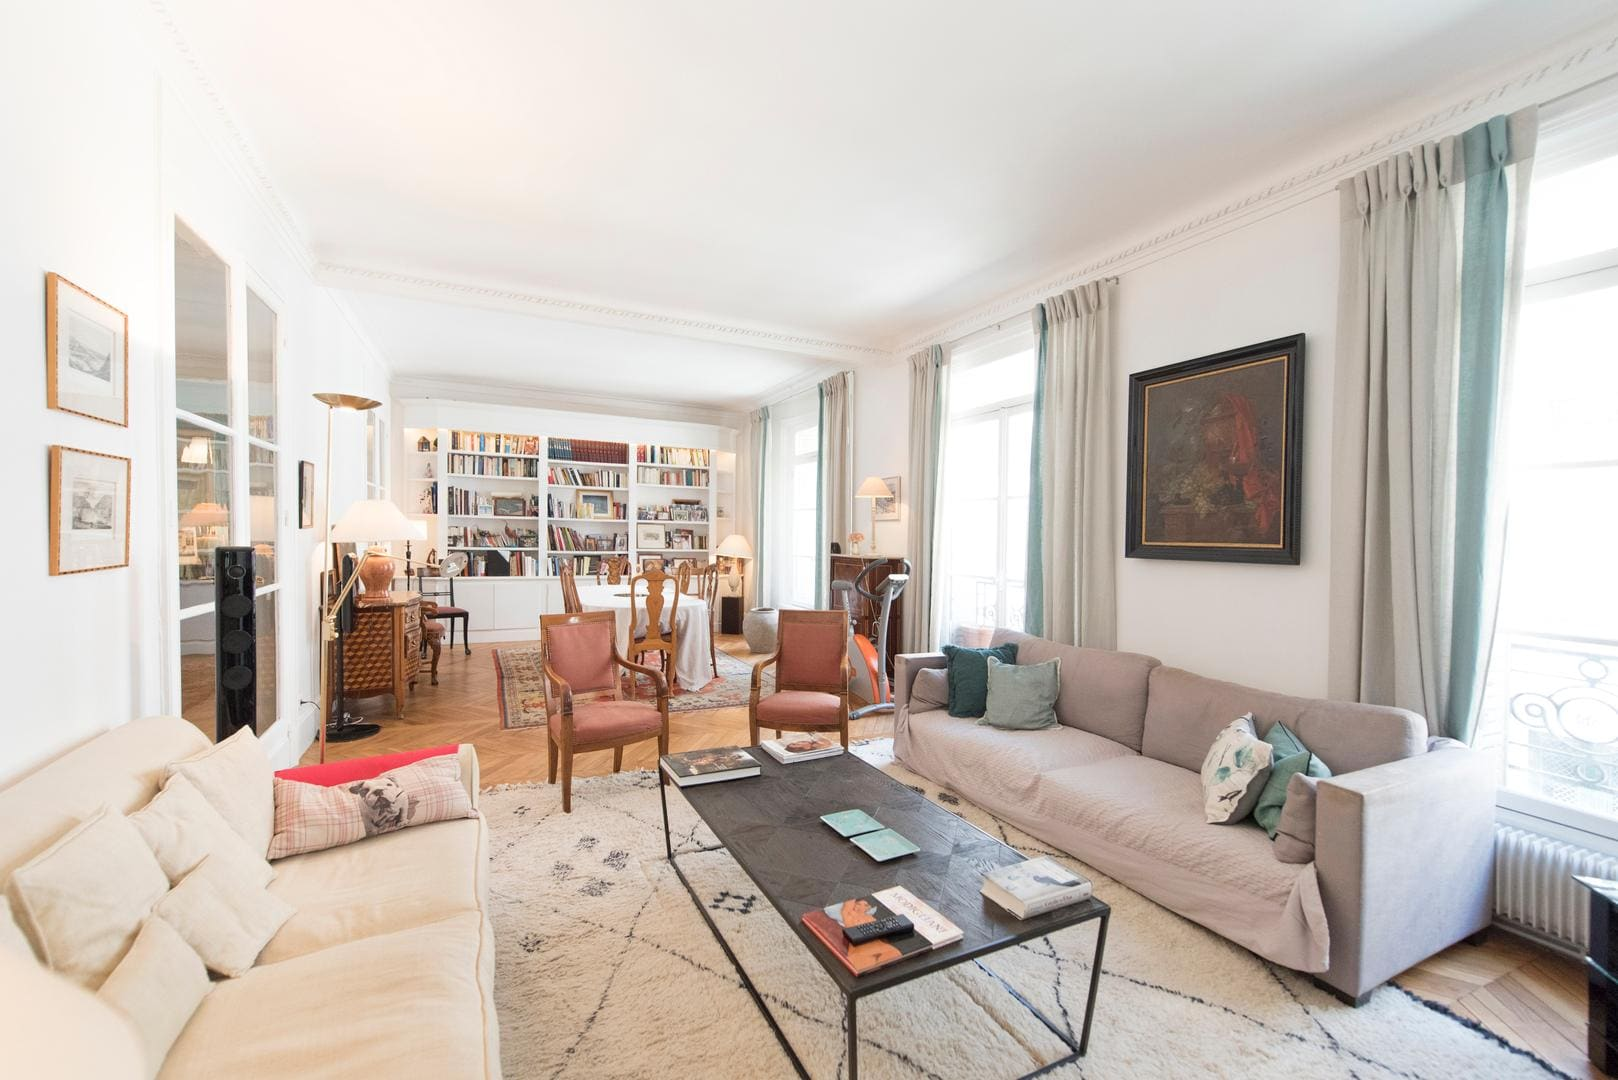 Property Image 2 - Spacious Inviting Apartment in the 16th near the Seine